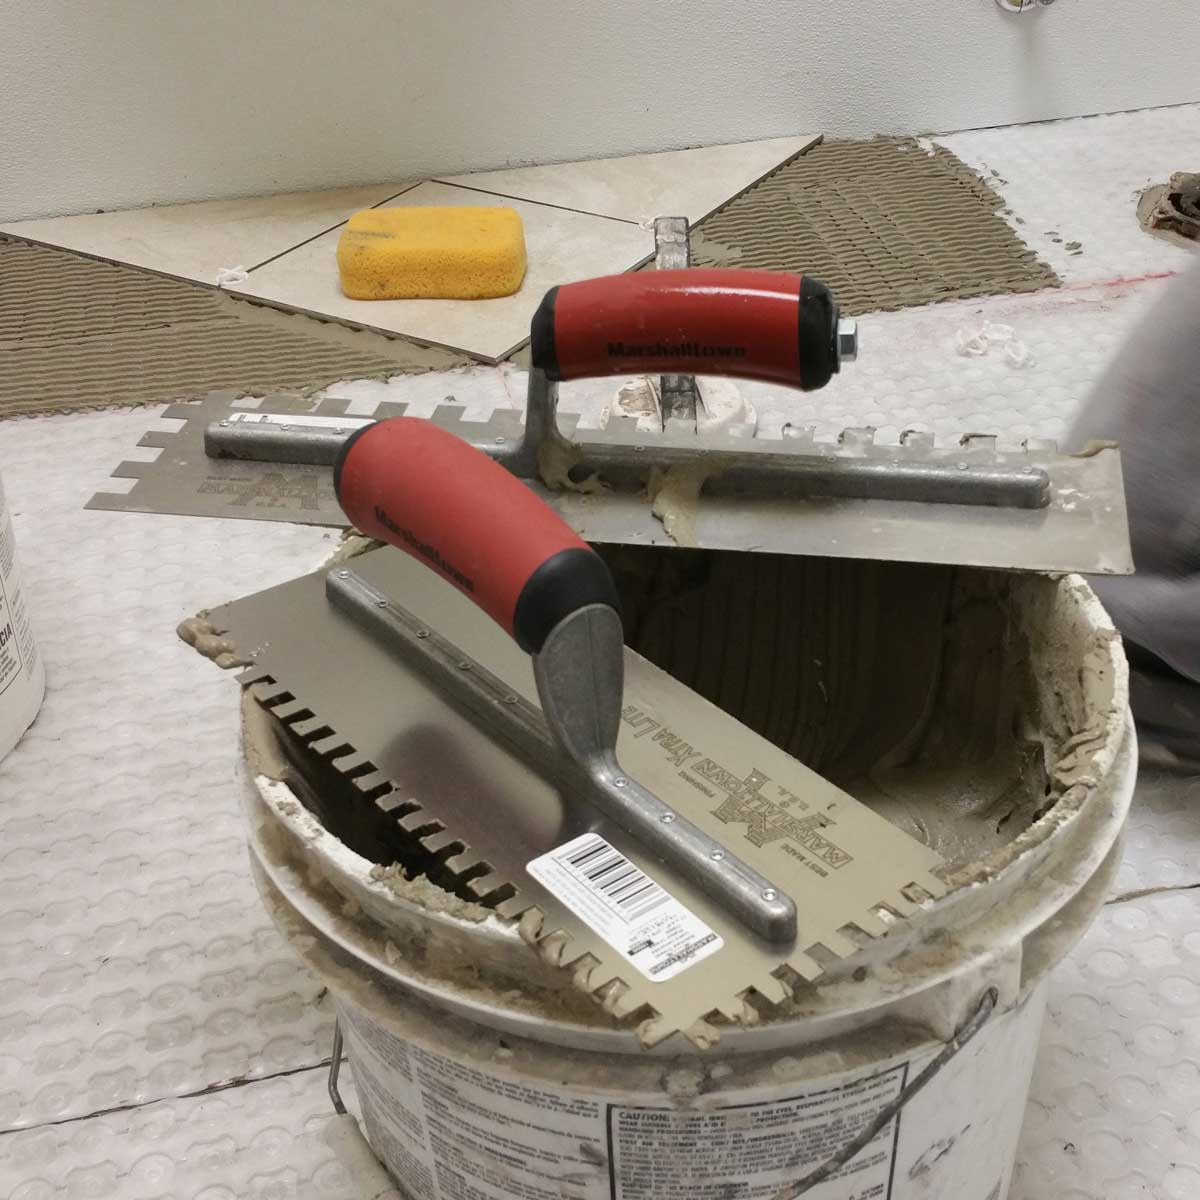 Marshalltown Notched Trowels